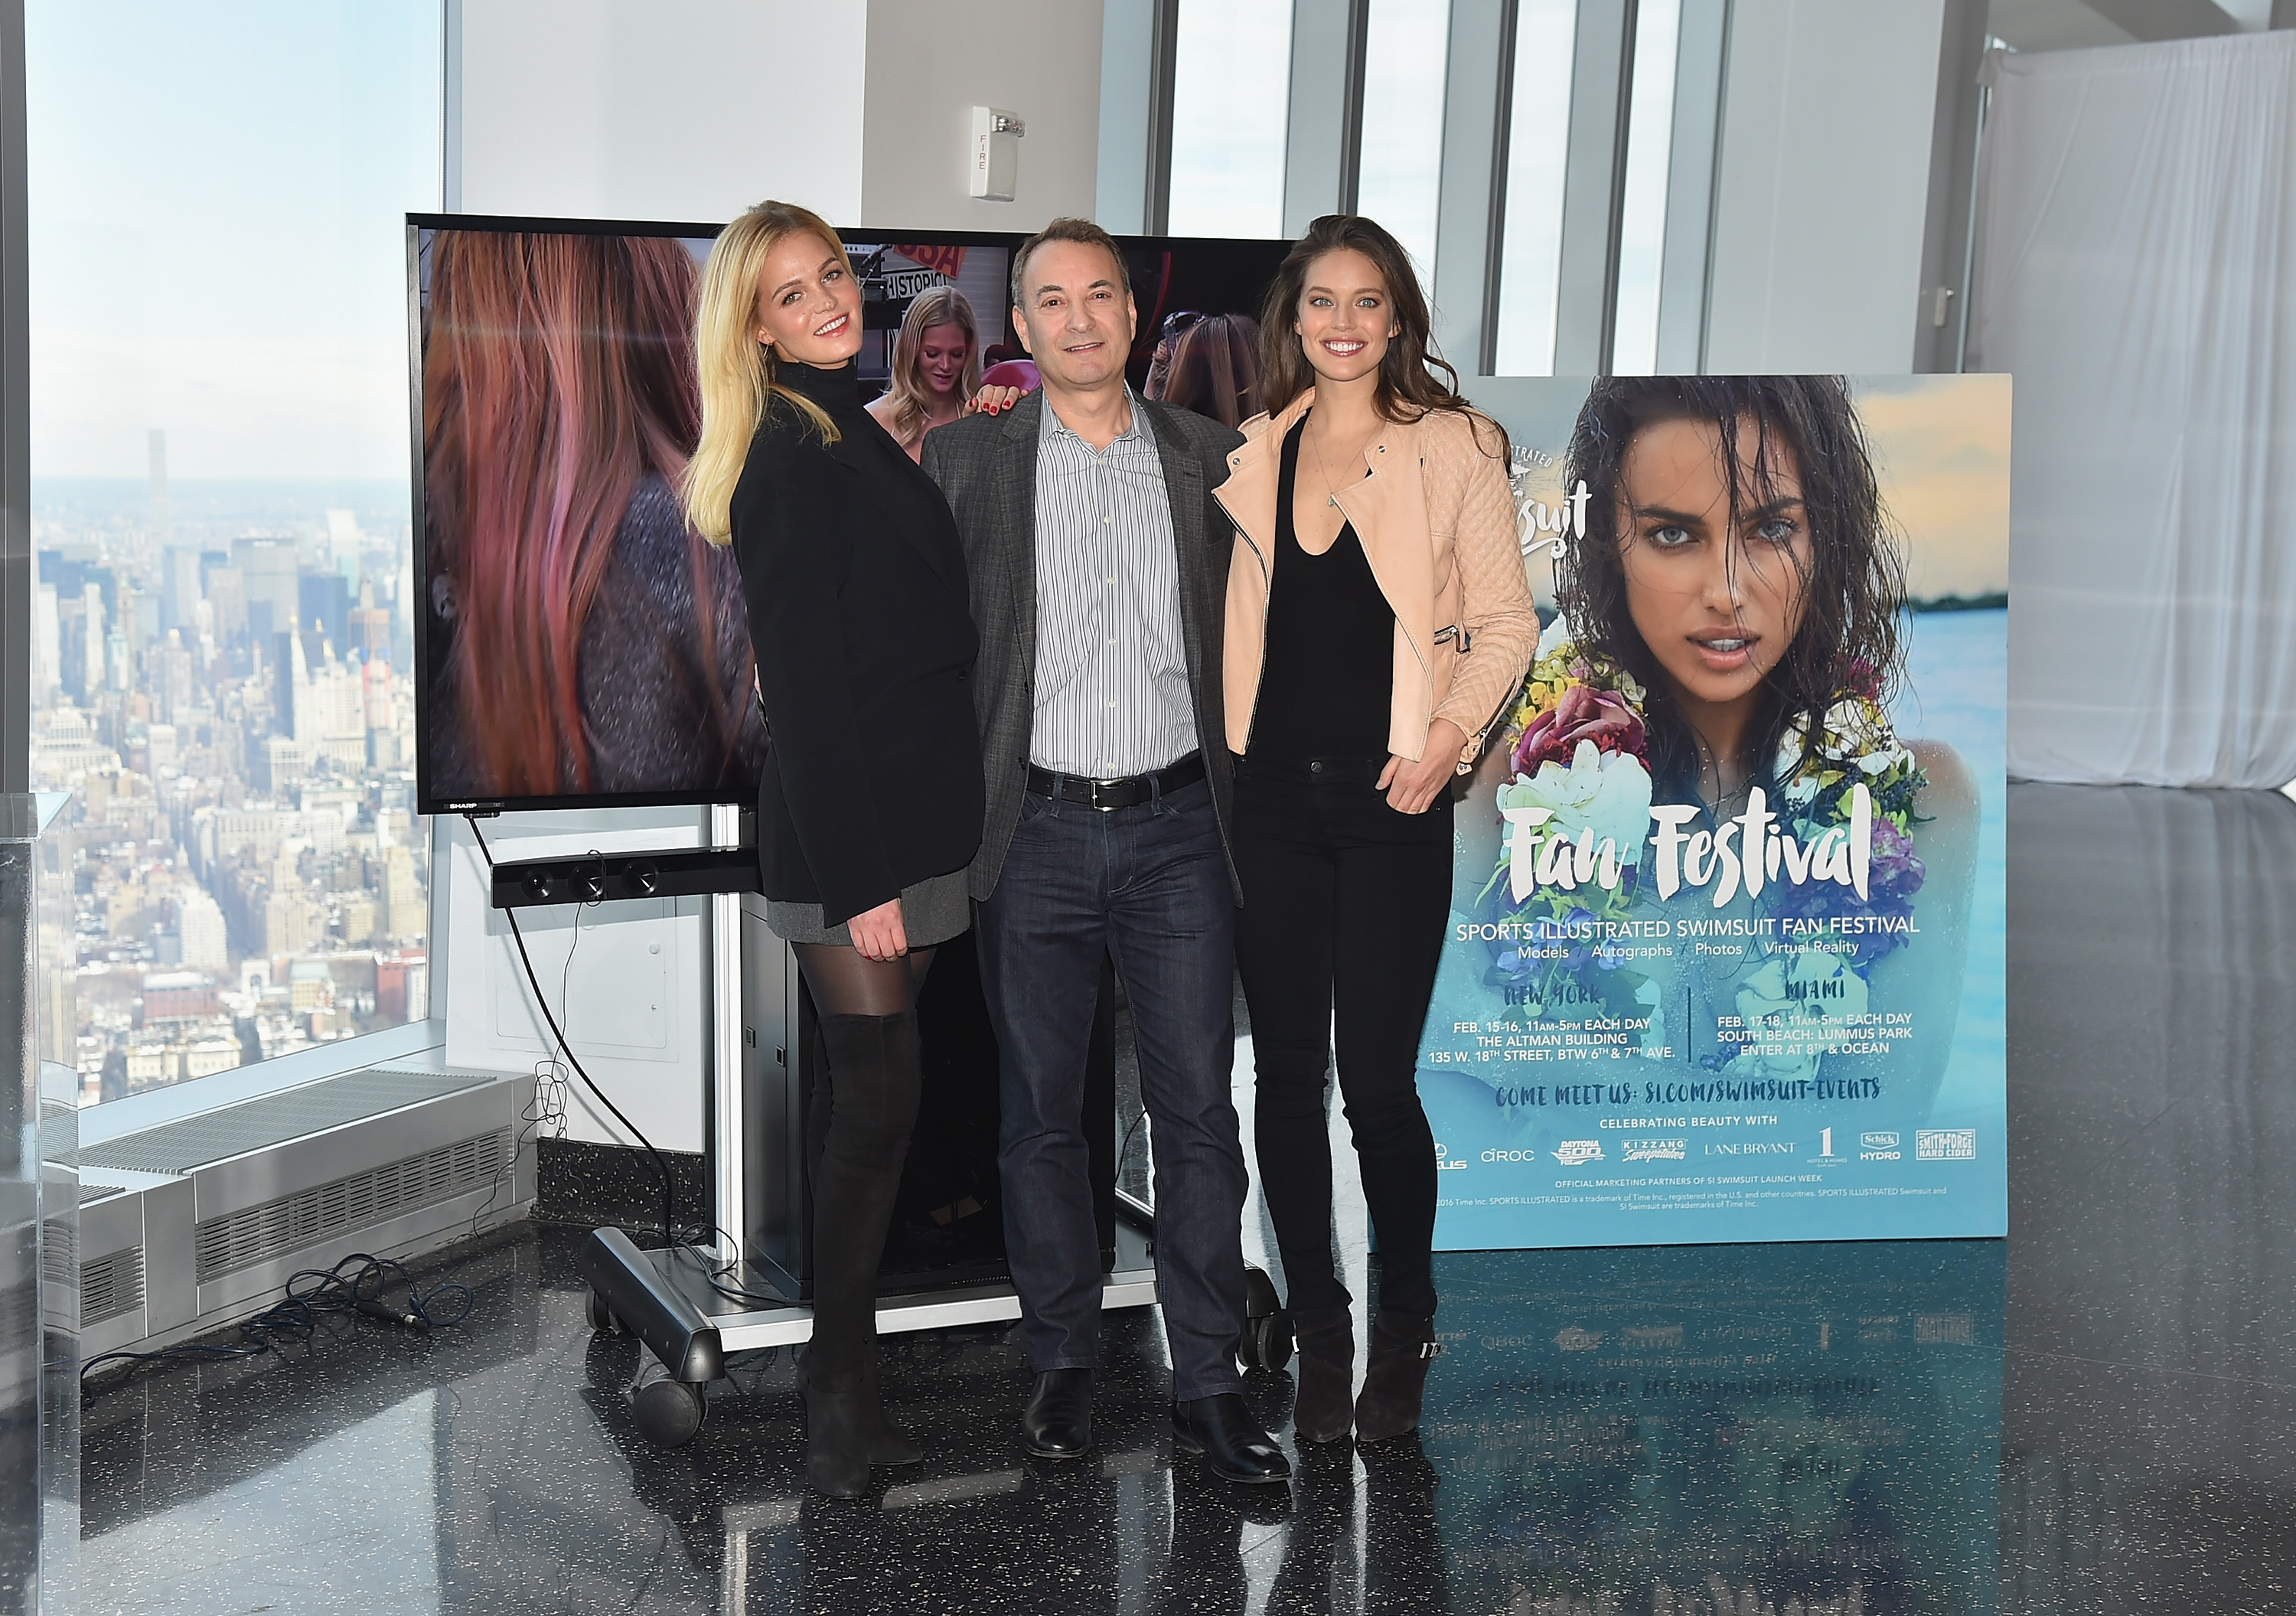 Sports Illustrated Swimsuit Models Emily DiDonato and Erin Heatherton, with SI's Editor-in-Chief Paul Fichtenbaum, reveal SI Swimsuit 2016 launch week events in New York City at One World Observatory